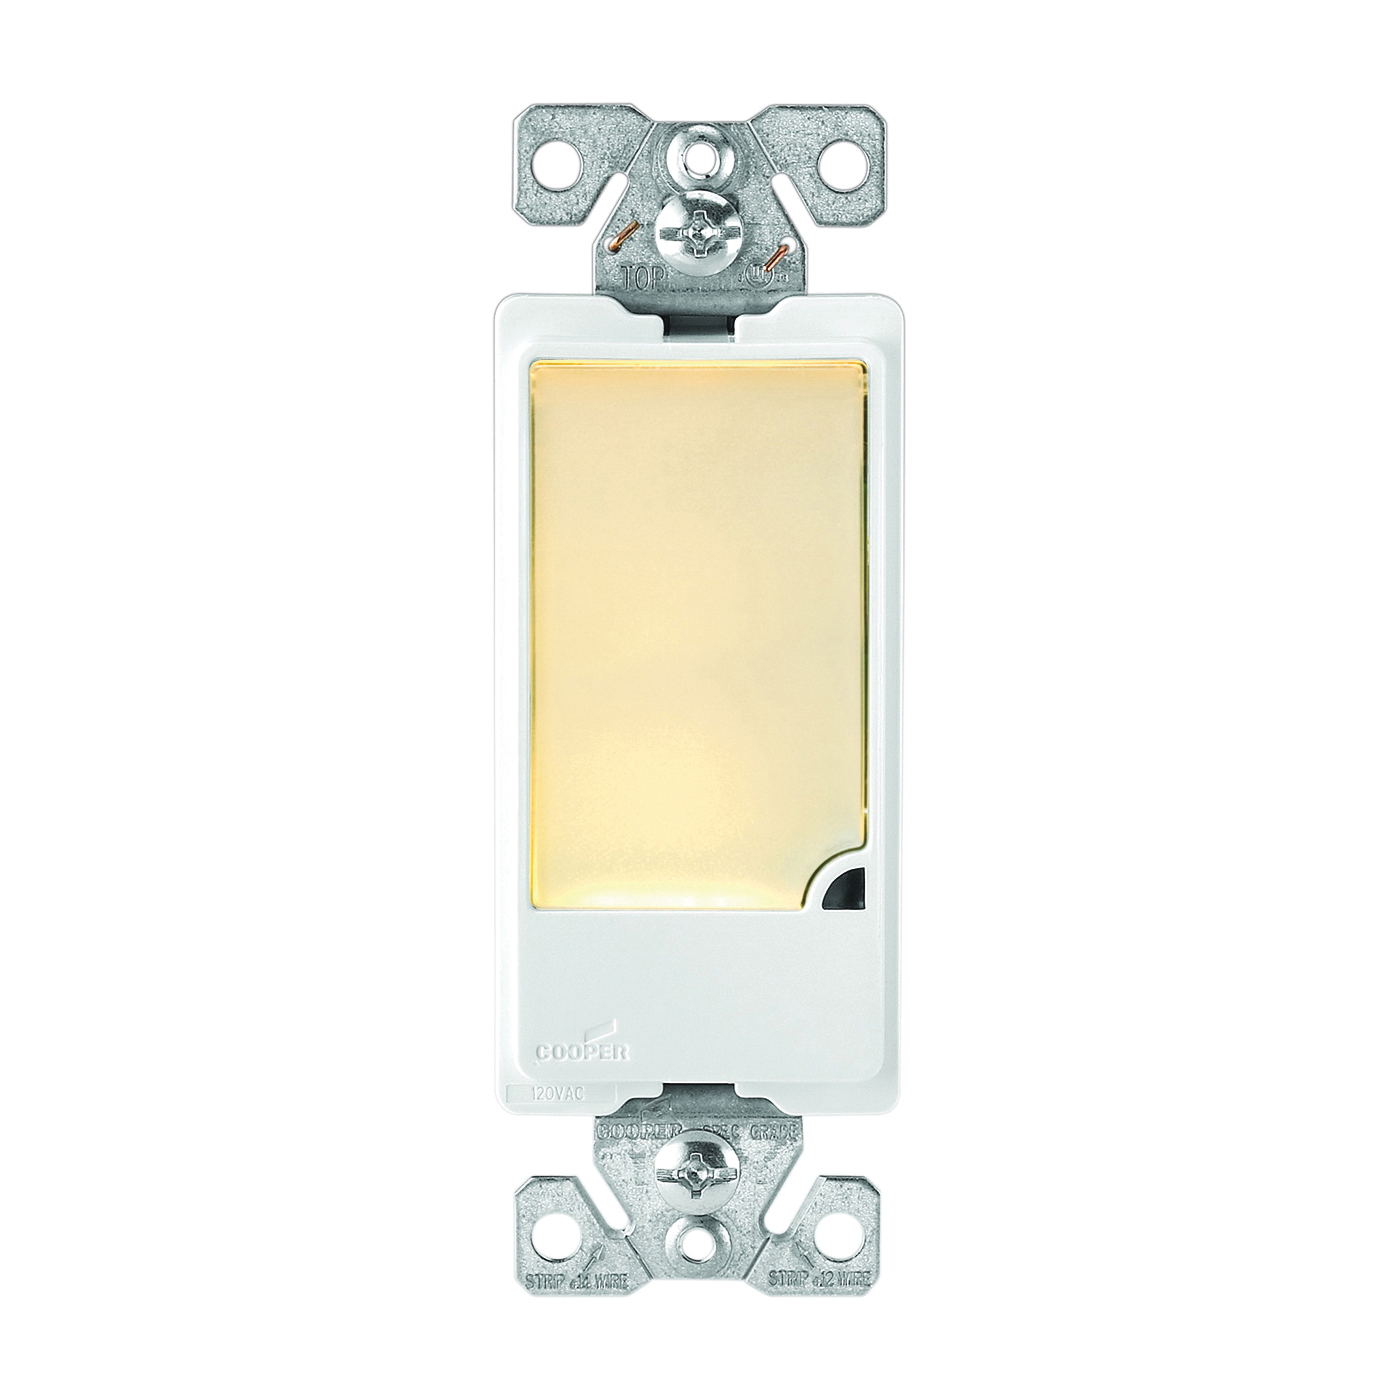 Picture of Eaton Cooper Wiring Patrol 7737V-BOX Nightlight, 15 A, 120 V, 1 W, 3-Lamp, LED Lamp, Ivory Light, PVC Fixture